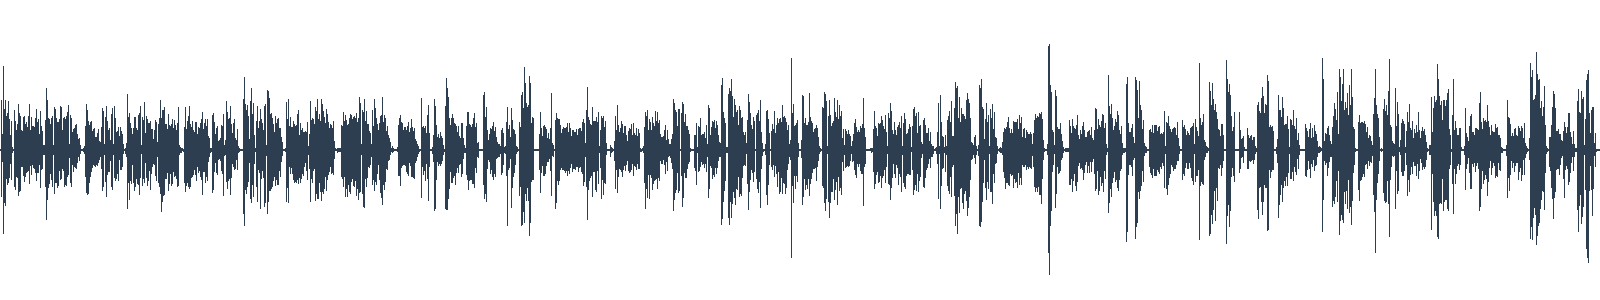 Paddington na cestách waveform